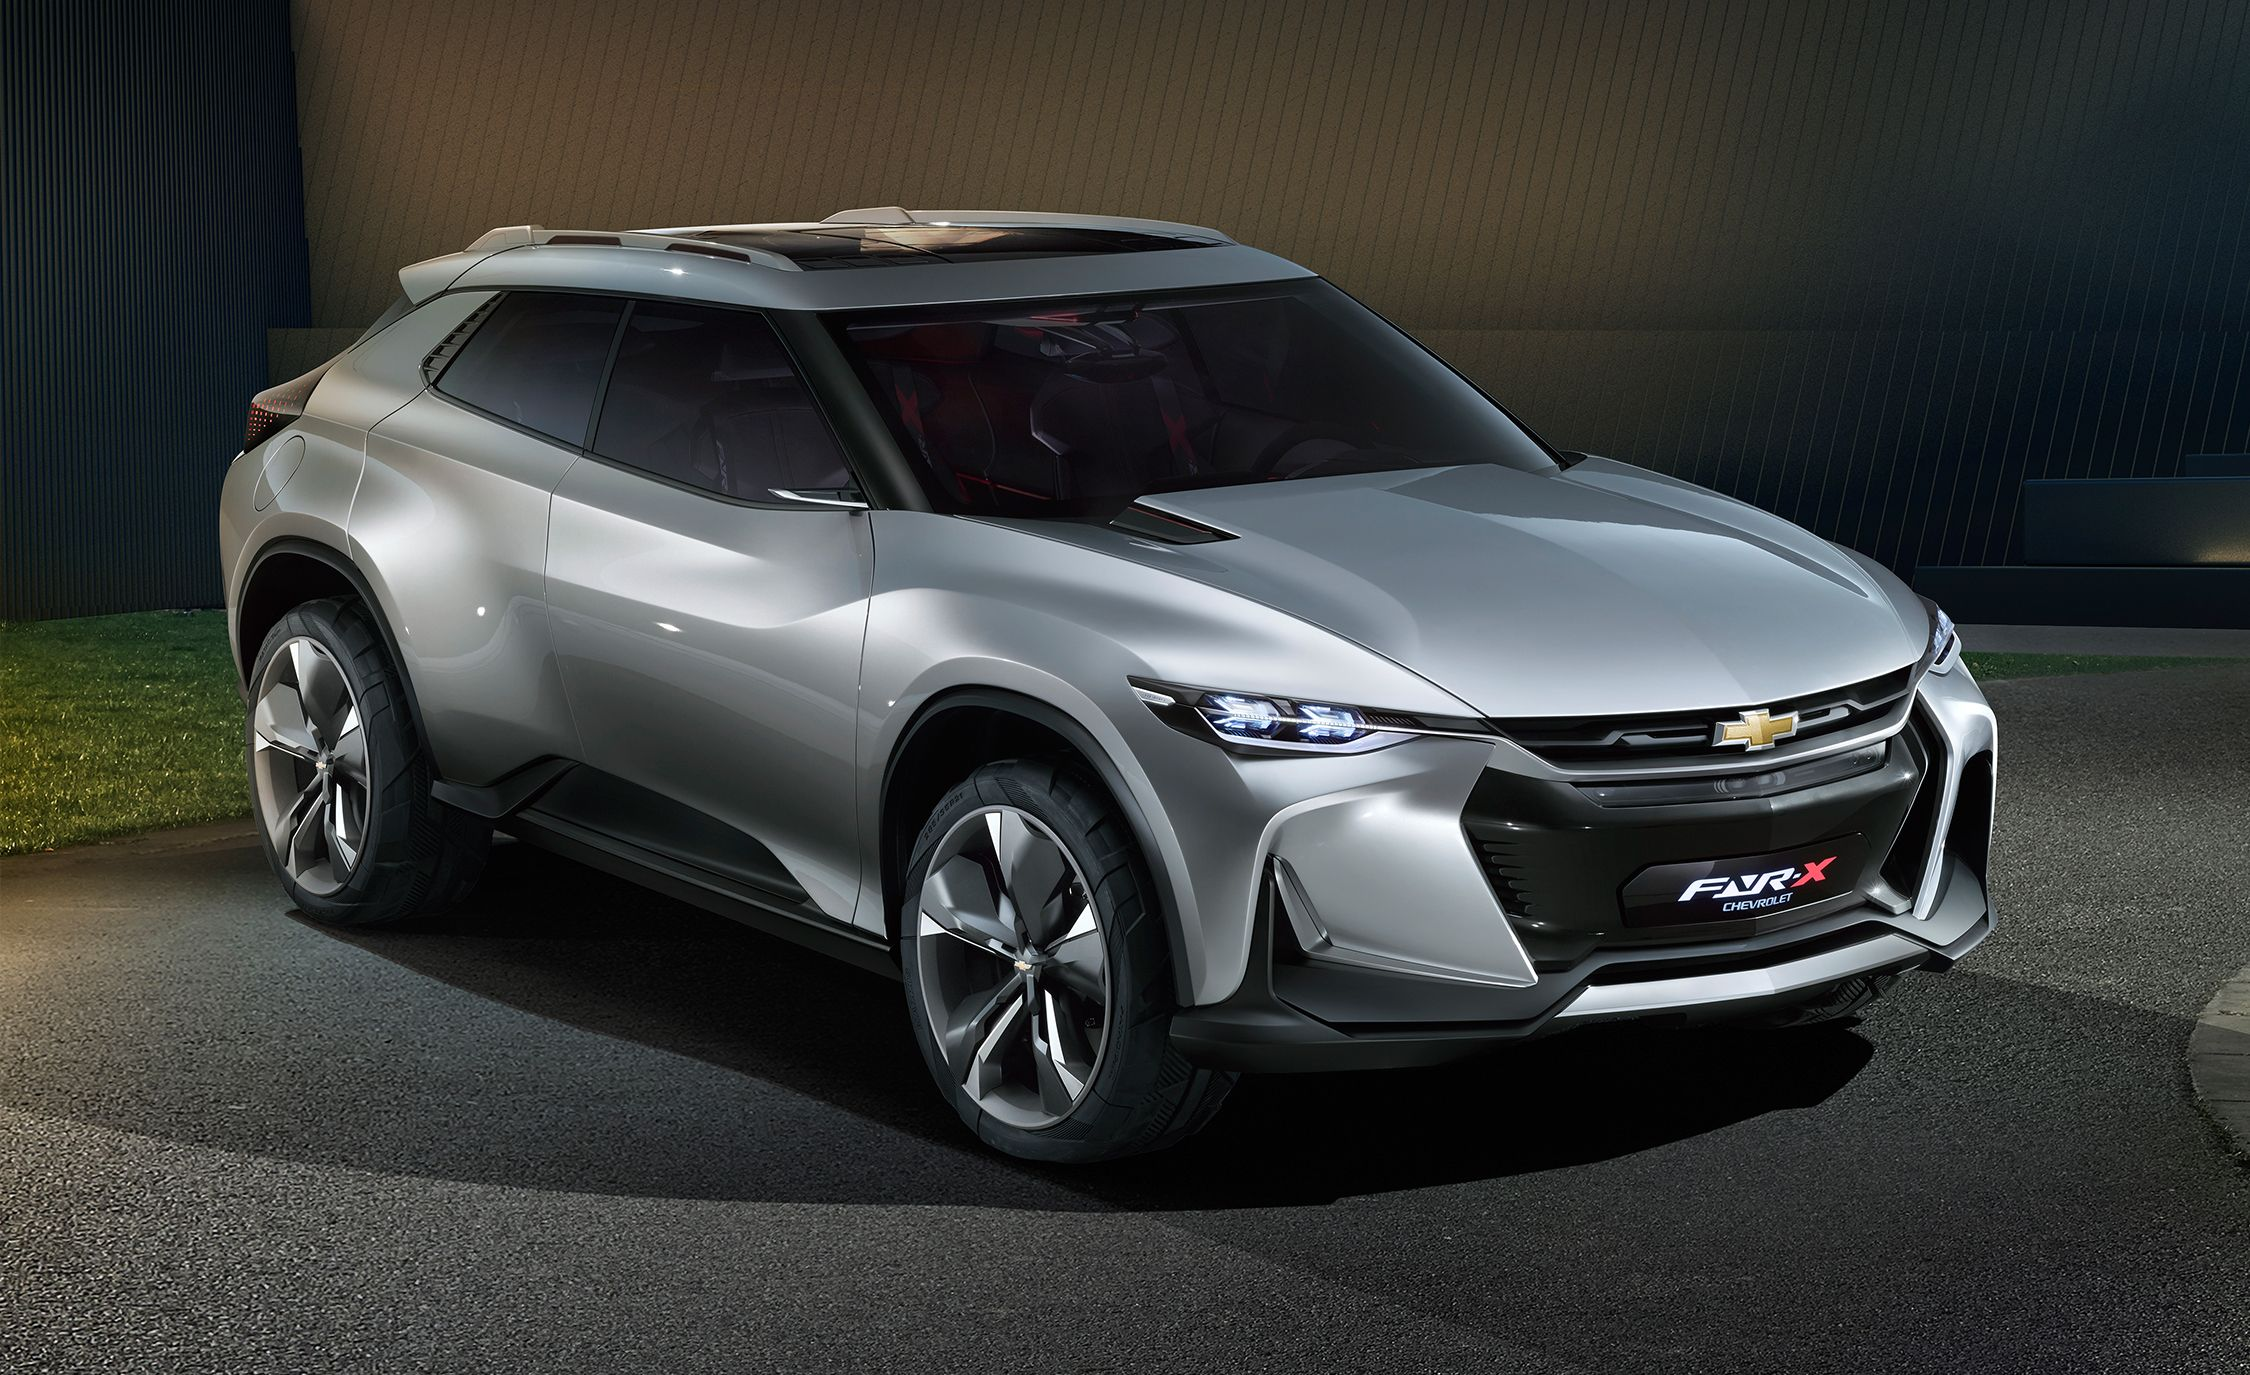 Chevrolet FNR-X Concept Photos and Info | News | Car and ...